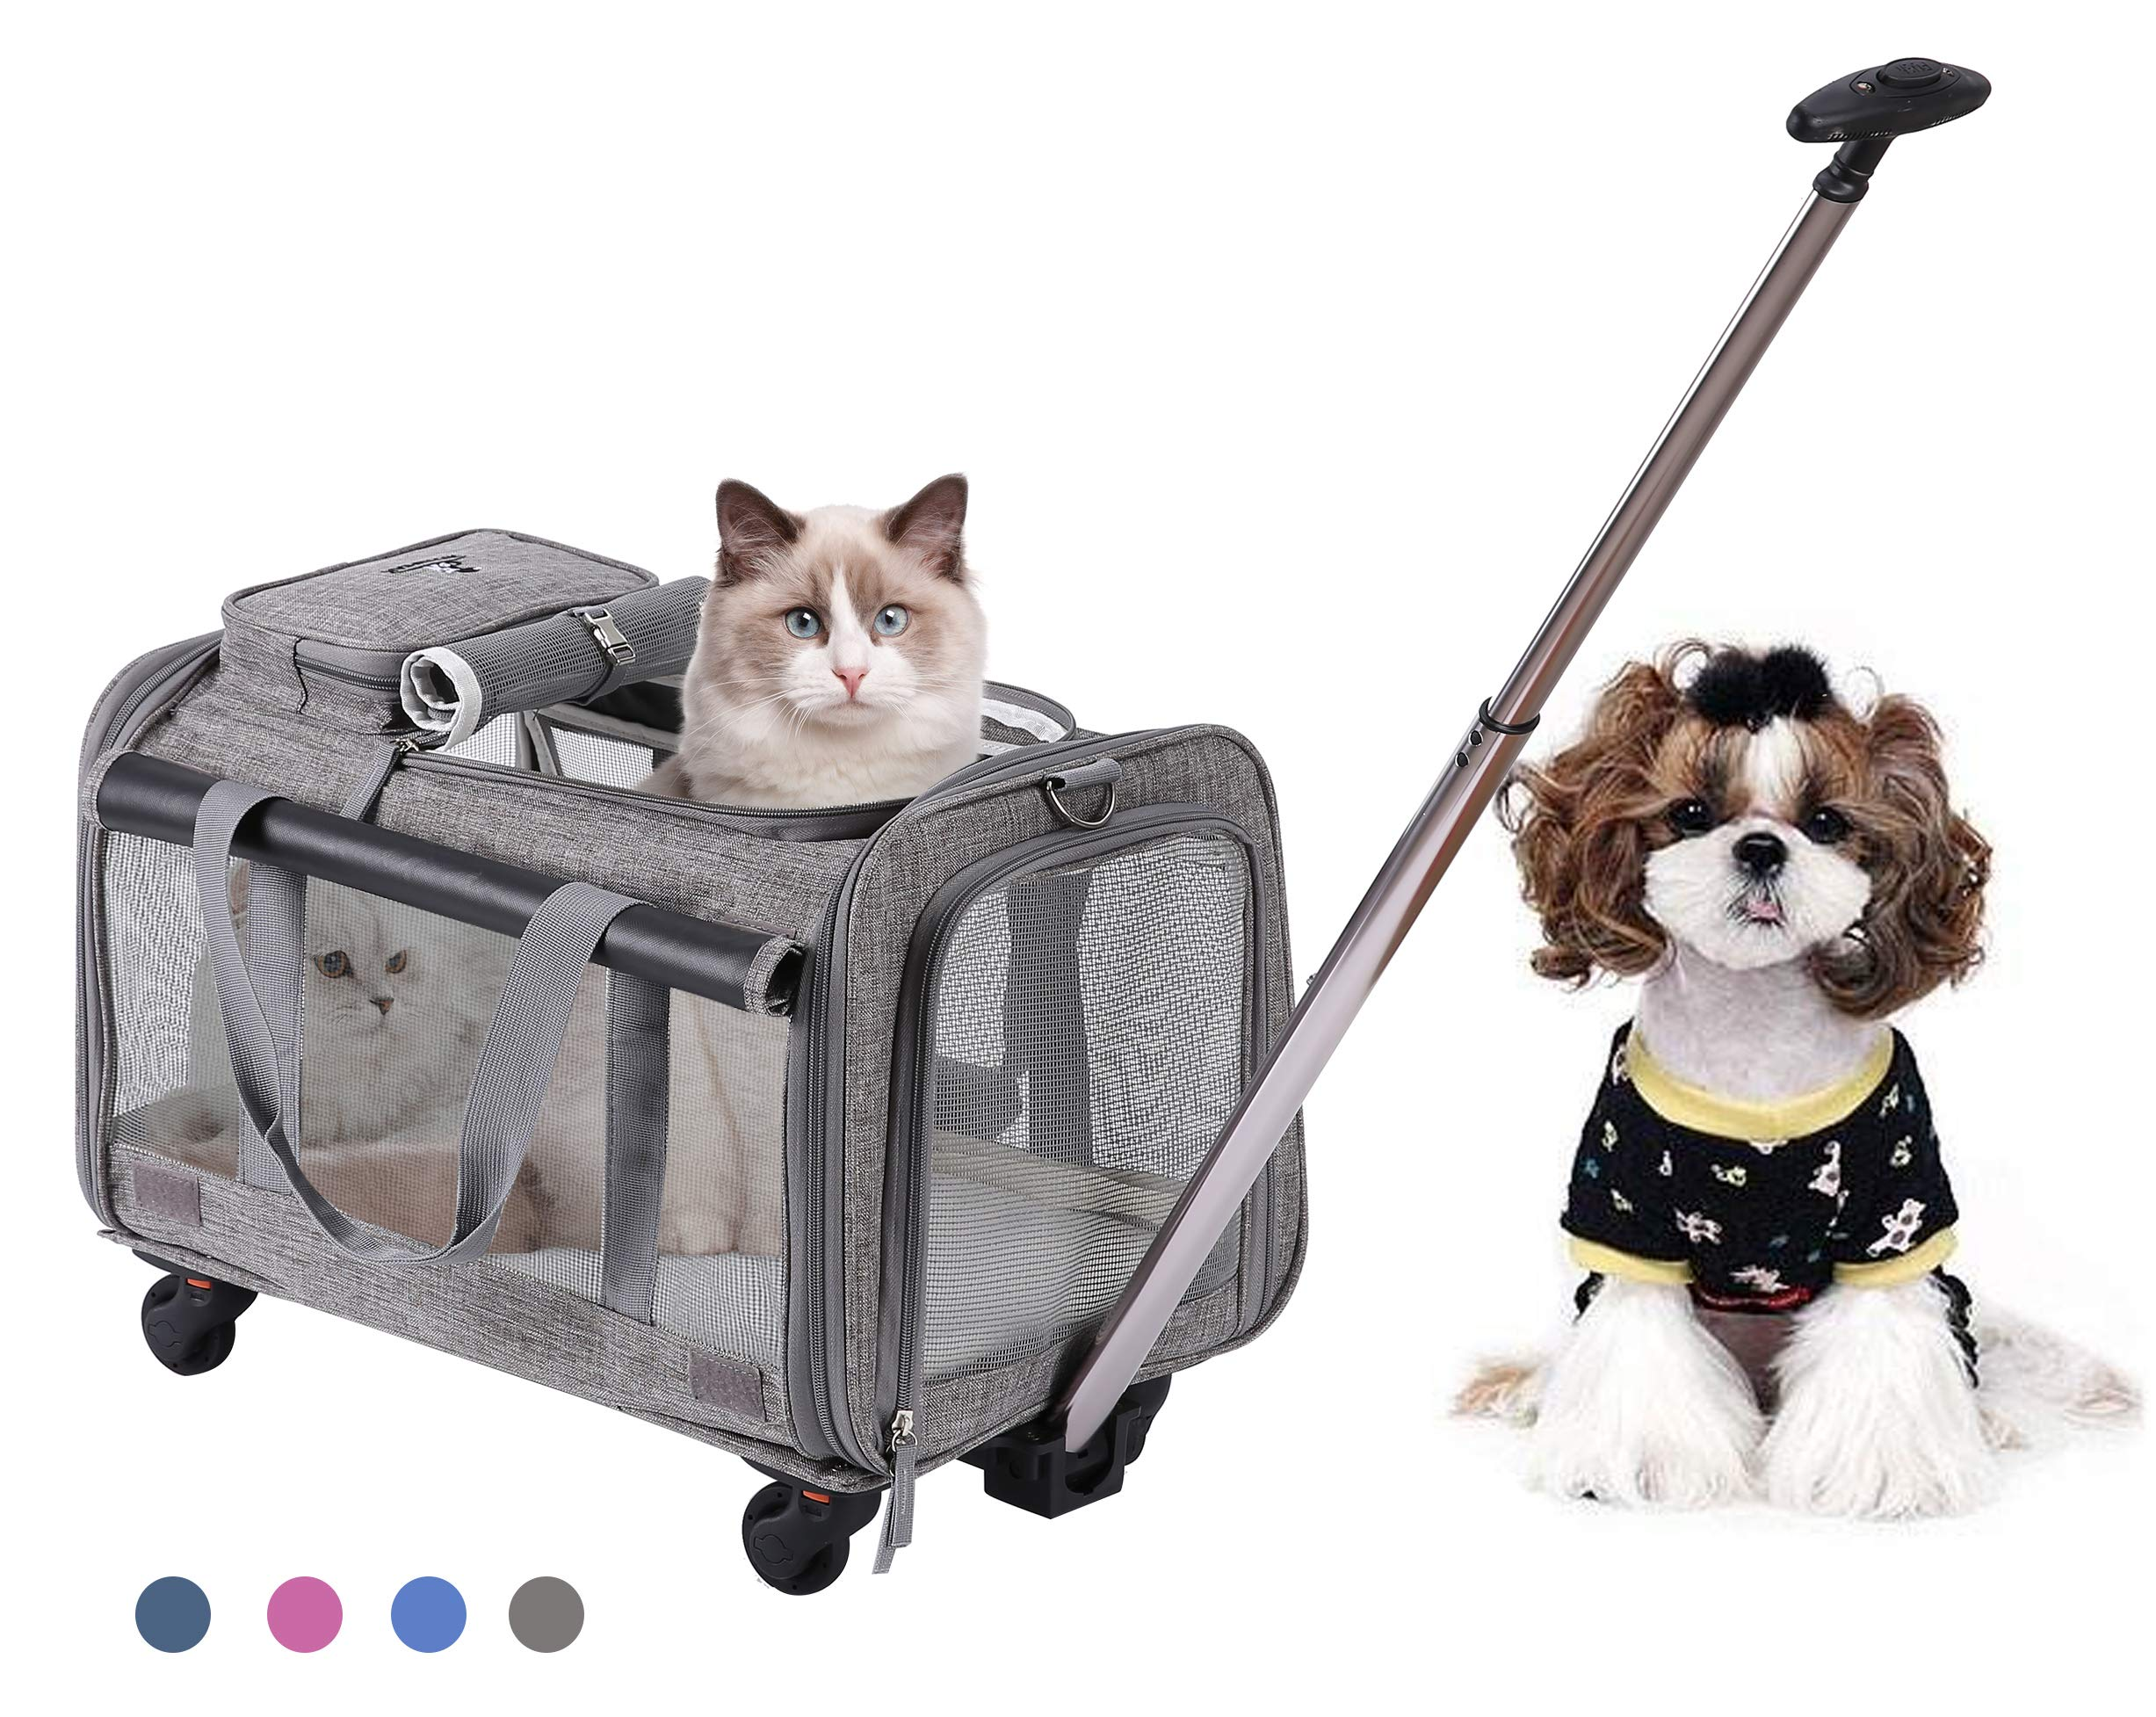 MOVEPEAK Folding Pets Carrier with Wheel, Luxury Pet Bag Strollers with Comfortable Fleece Mat for Travel, Hiking,Camping, Designed for Cats, Dogs, Kittens, Puppies, 360° Swivel Mute Wheels (Grey)